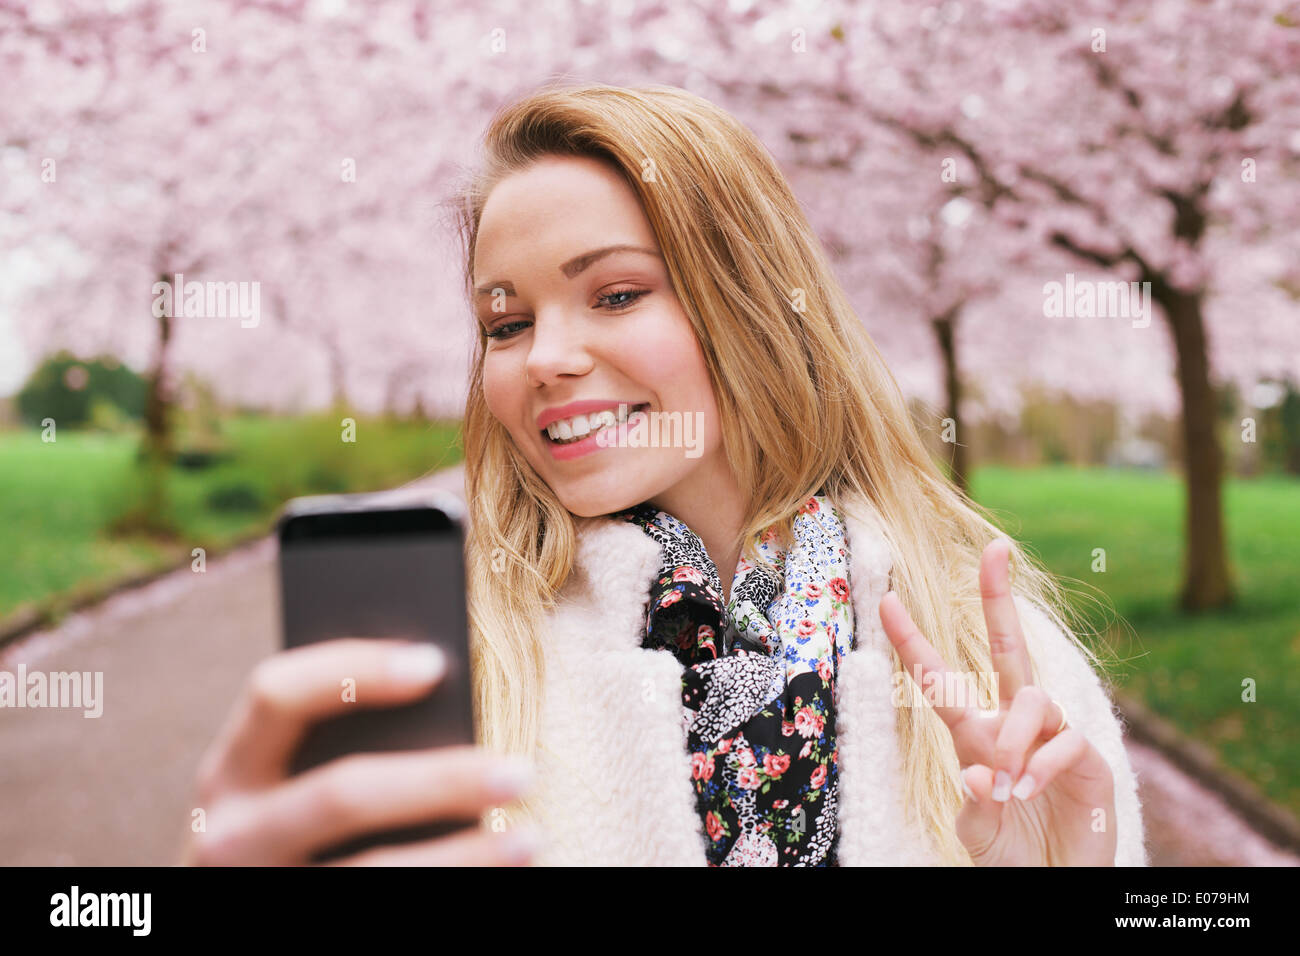 Pretty young female model gesturing peace sign while taking her picture with cell phone. Beautiful caucasian young woman. - Stock Image